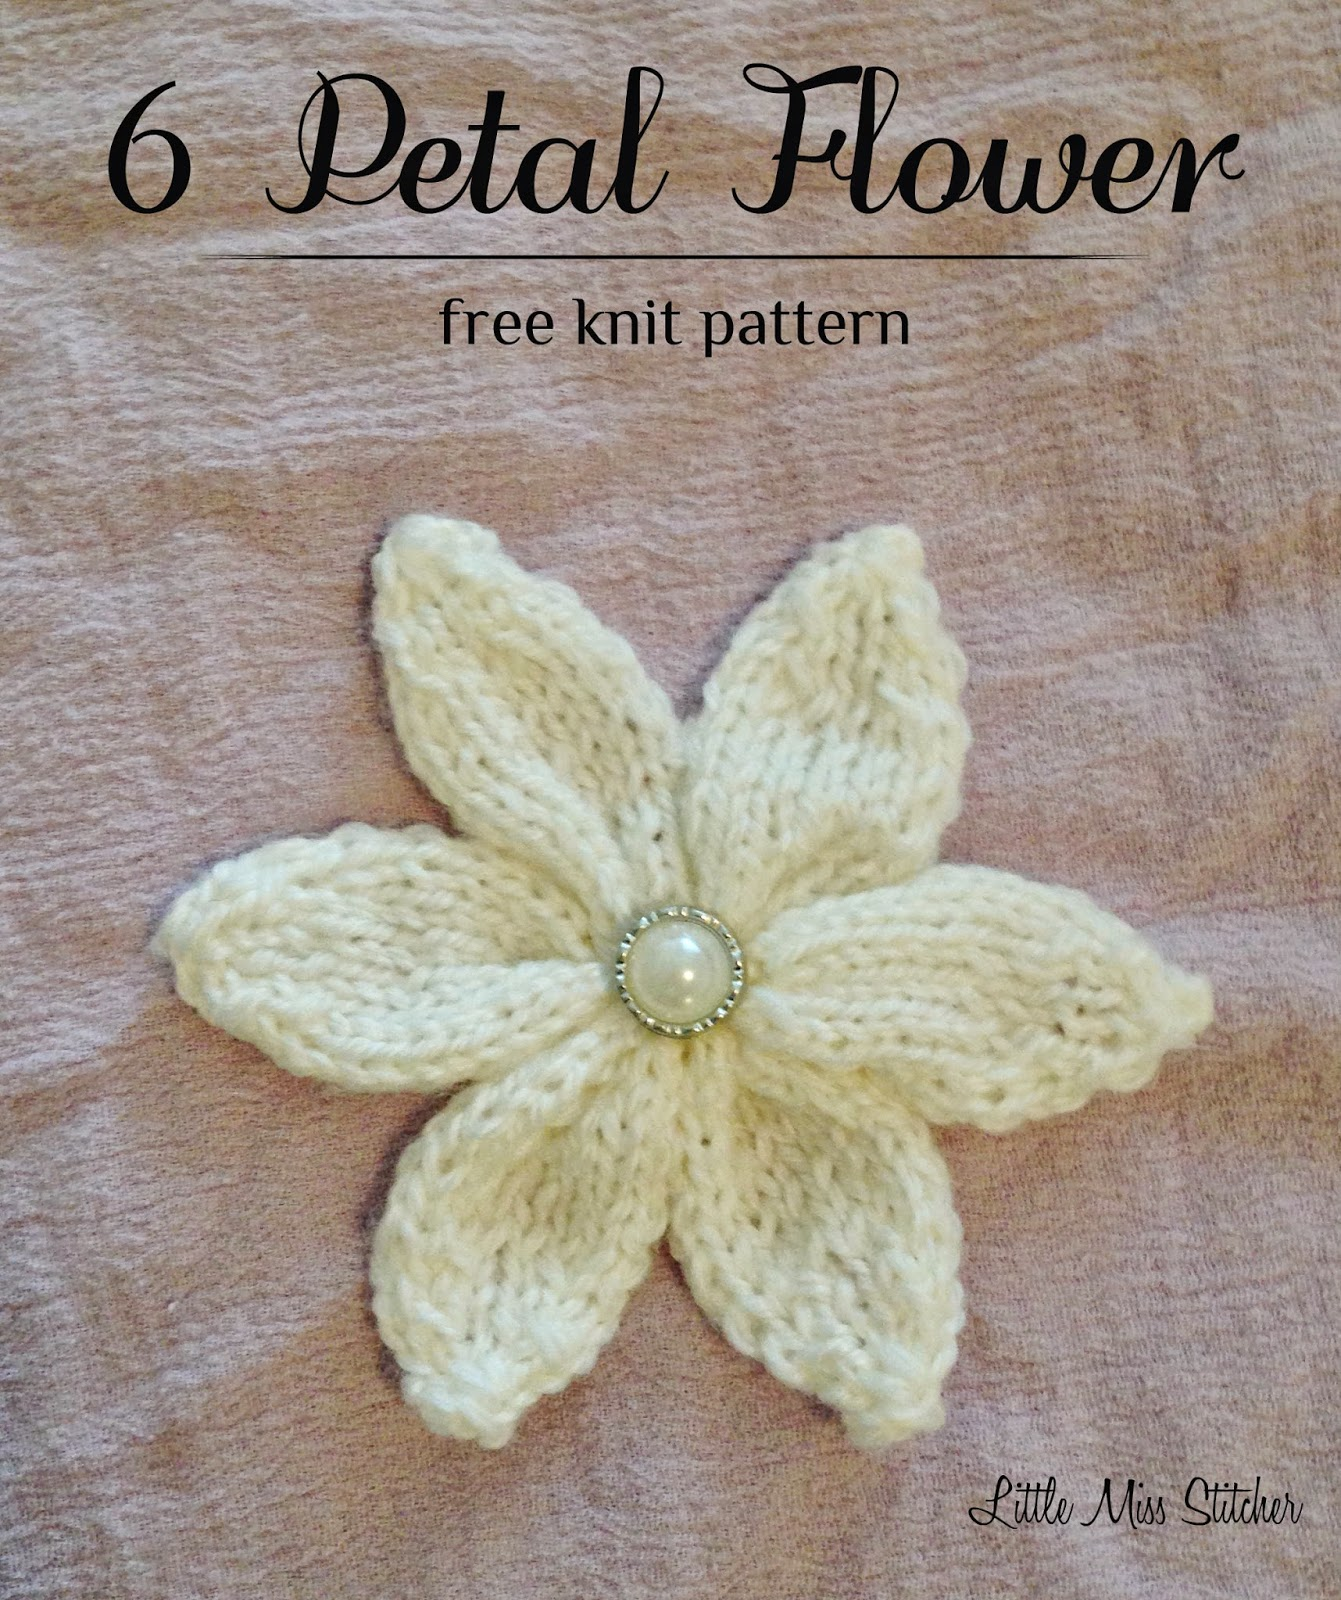 Knitting Flowers Patterns Free : Little miss stitcher petal knit flower free pattern